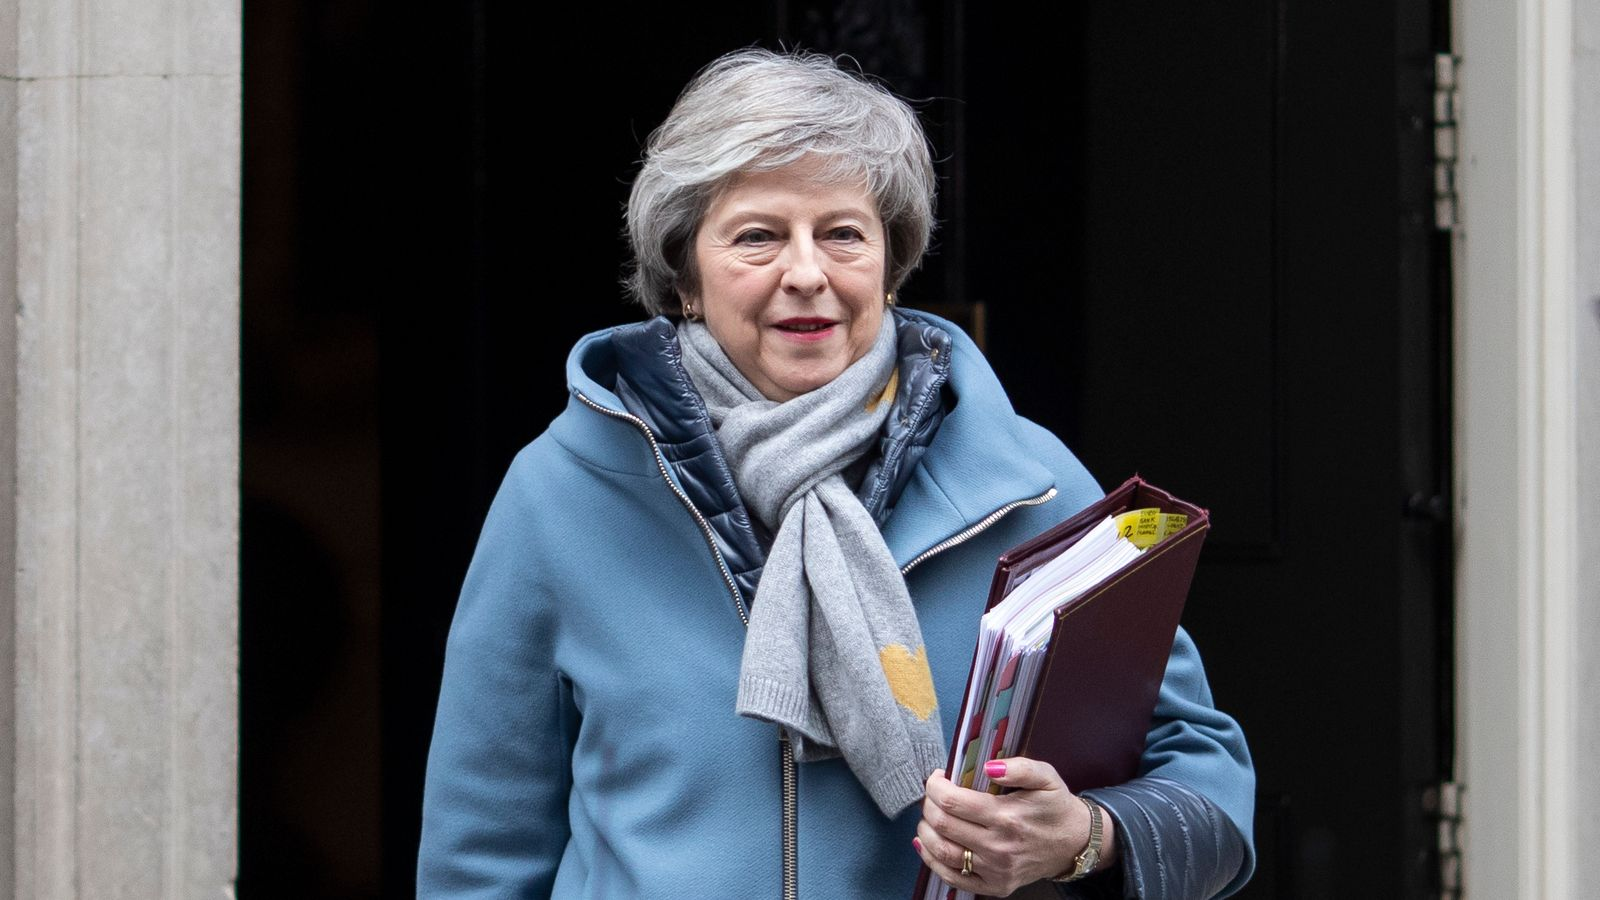 May warns MPs against 'breach of trust in our democracy'